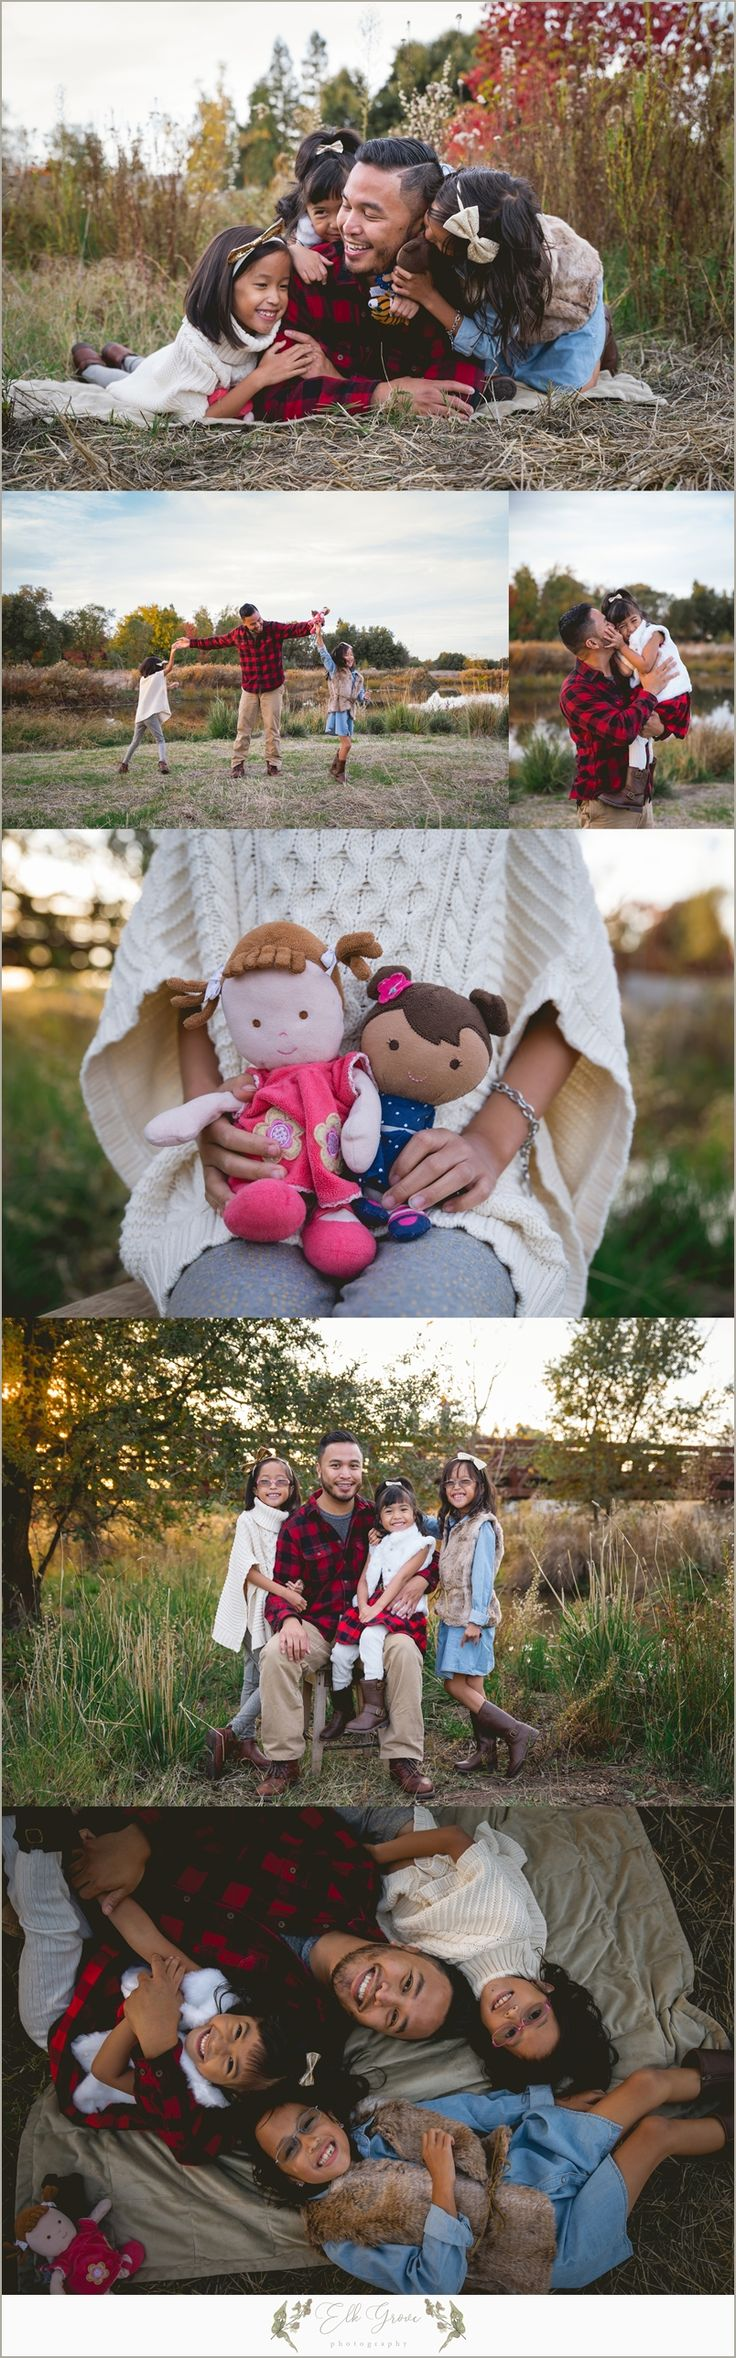 Sweet Father and Daughter Photography Poses. Family Photography by Elk Grove Photography - Natural Light - Posing Ideas for Families, Siblings, Parents, Couples, and Large Groups. Unposed Candid Ideas. Family Photography Outfit Ideas and Color Palettes. Sacramento, CA.